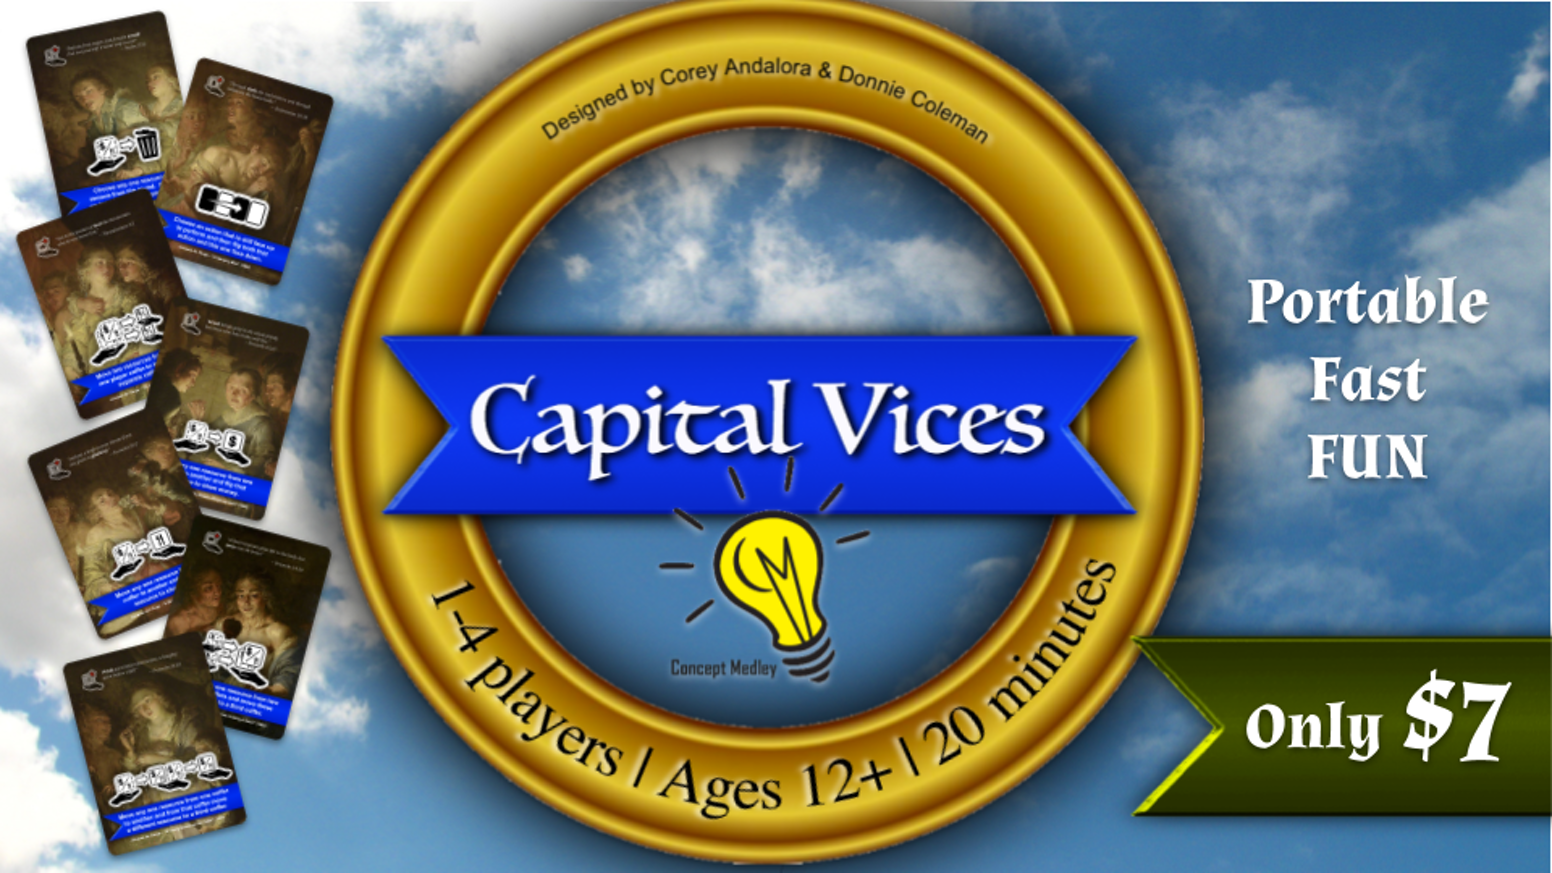 Carefully arrange the Capital's resources to boost your virtue and expose others' vice - portable and playable in 20 minutes!